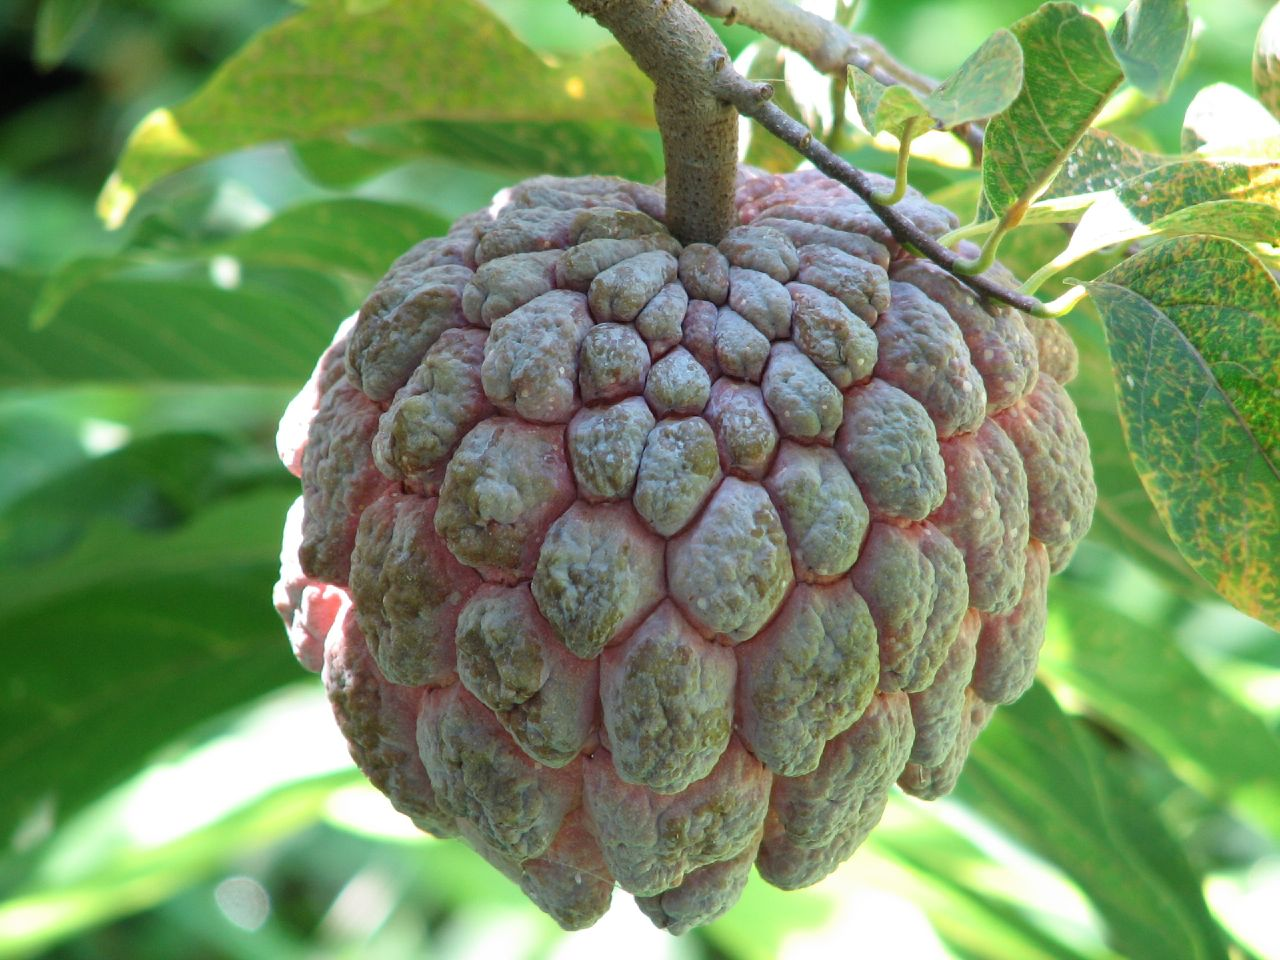 PAPAUSA FRUIT MEXICO - CACAO POTS EXOTIC FRUIT (click image to view)